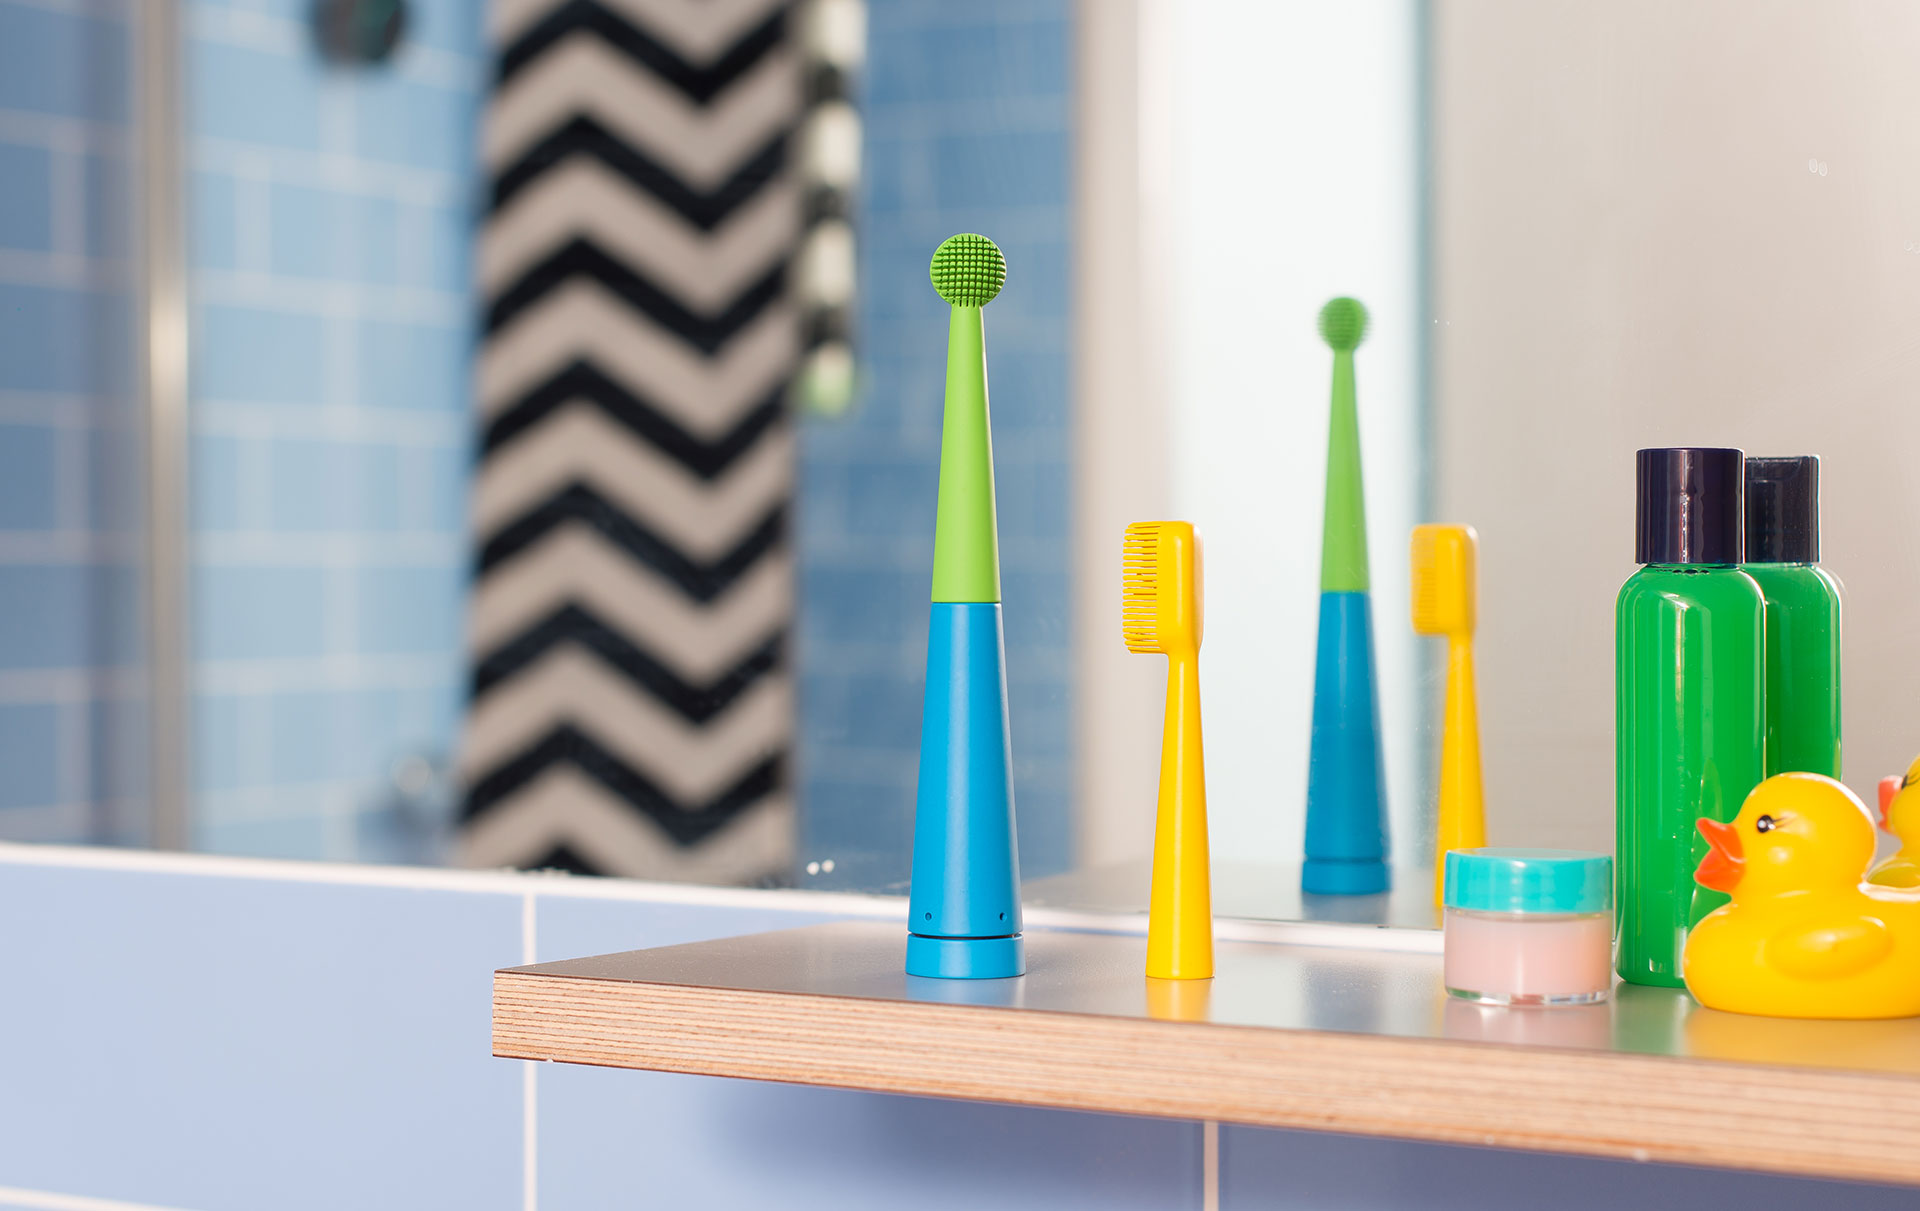 Benjamin Brush, a smart toothbrush that can play two minutes of music to accompany teeth cleaning, will be the next Bleep Bleeps product to launch. The brush syncs with an app which displays prompts, brush times and messages of encouragement. Photos: Garry Maclennan